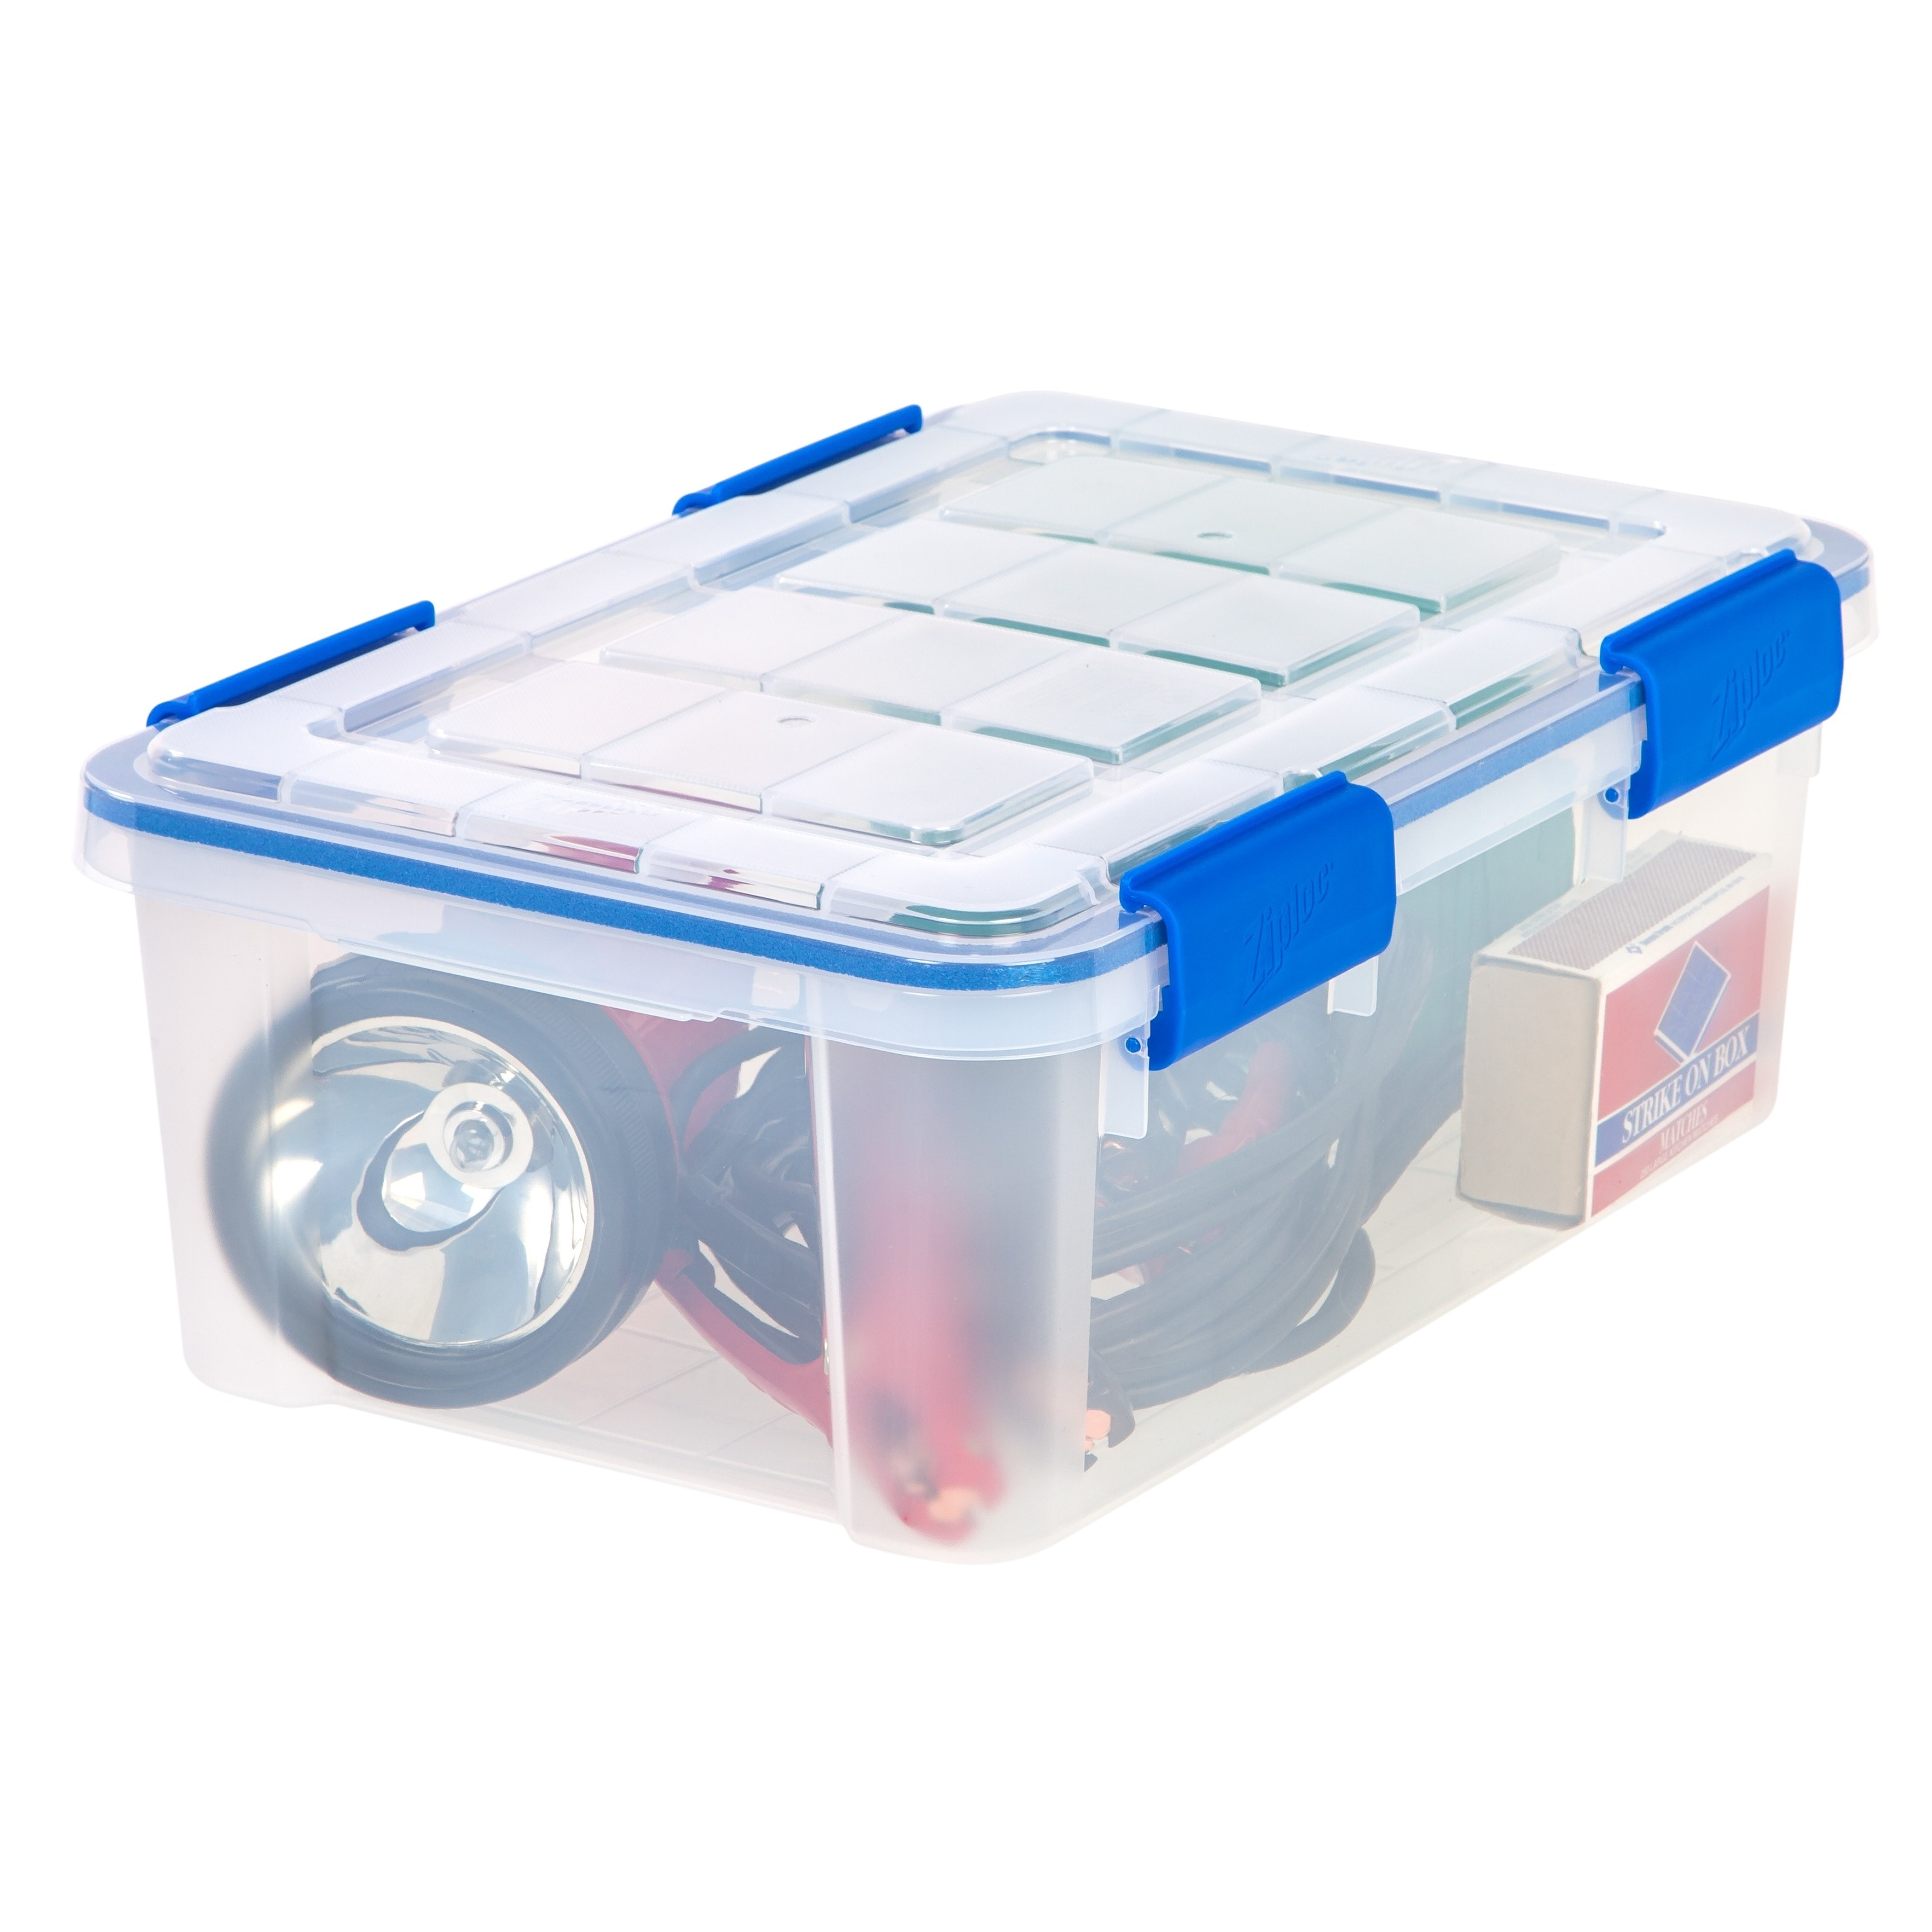 Shop Ziploc WeatherShield 16 qt. Plastic Storage Bin (Pack of 6 ...